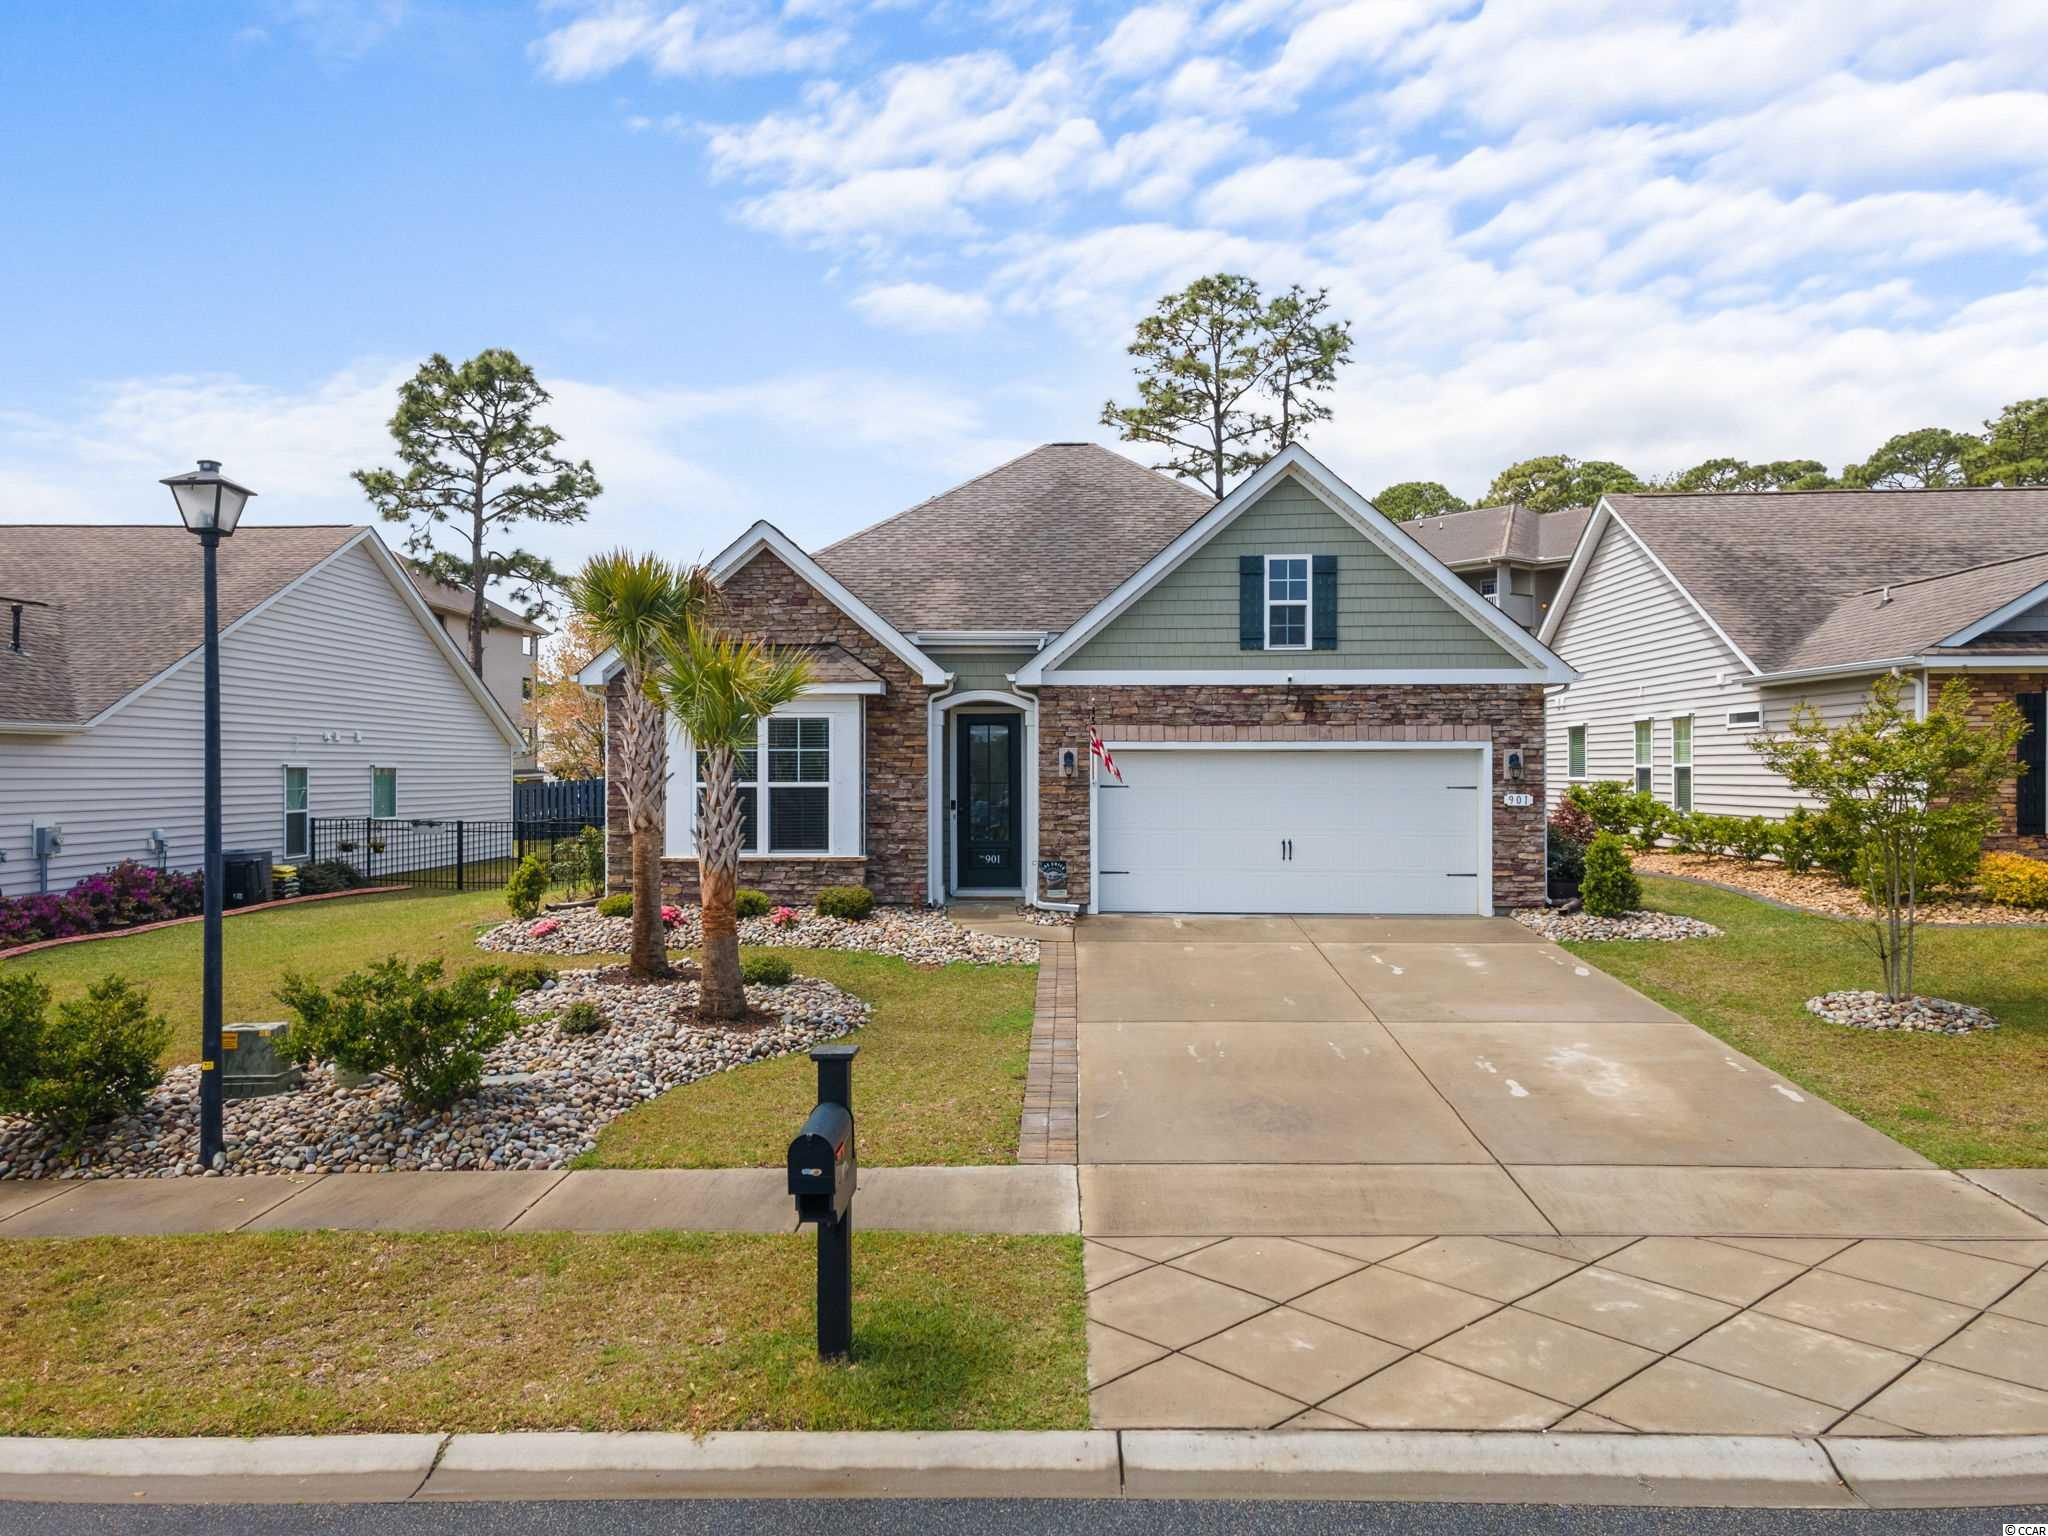 This immaculate 4br/2ba home is located in a small community close to shopping, dining, medical, and just a short golf cart ride to the beach. Only a few blocks from Main Street and the North Myrtle Beach Sports Complex where you will find many activities and entertainment year round. Enjoy the sunsets from the fenced backyard or enjoy those warm summer nights on the backyard screened porch. Solar power and natural gas helps to reduce the overall costs of electric. 9' smooth ceilings throughout. Other features include, LVP and wood plank tile floors, granite counter tops, beautifully landscaped yard, and pet door. Don't miss out on this one!